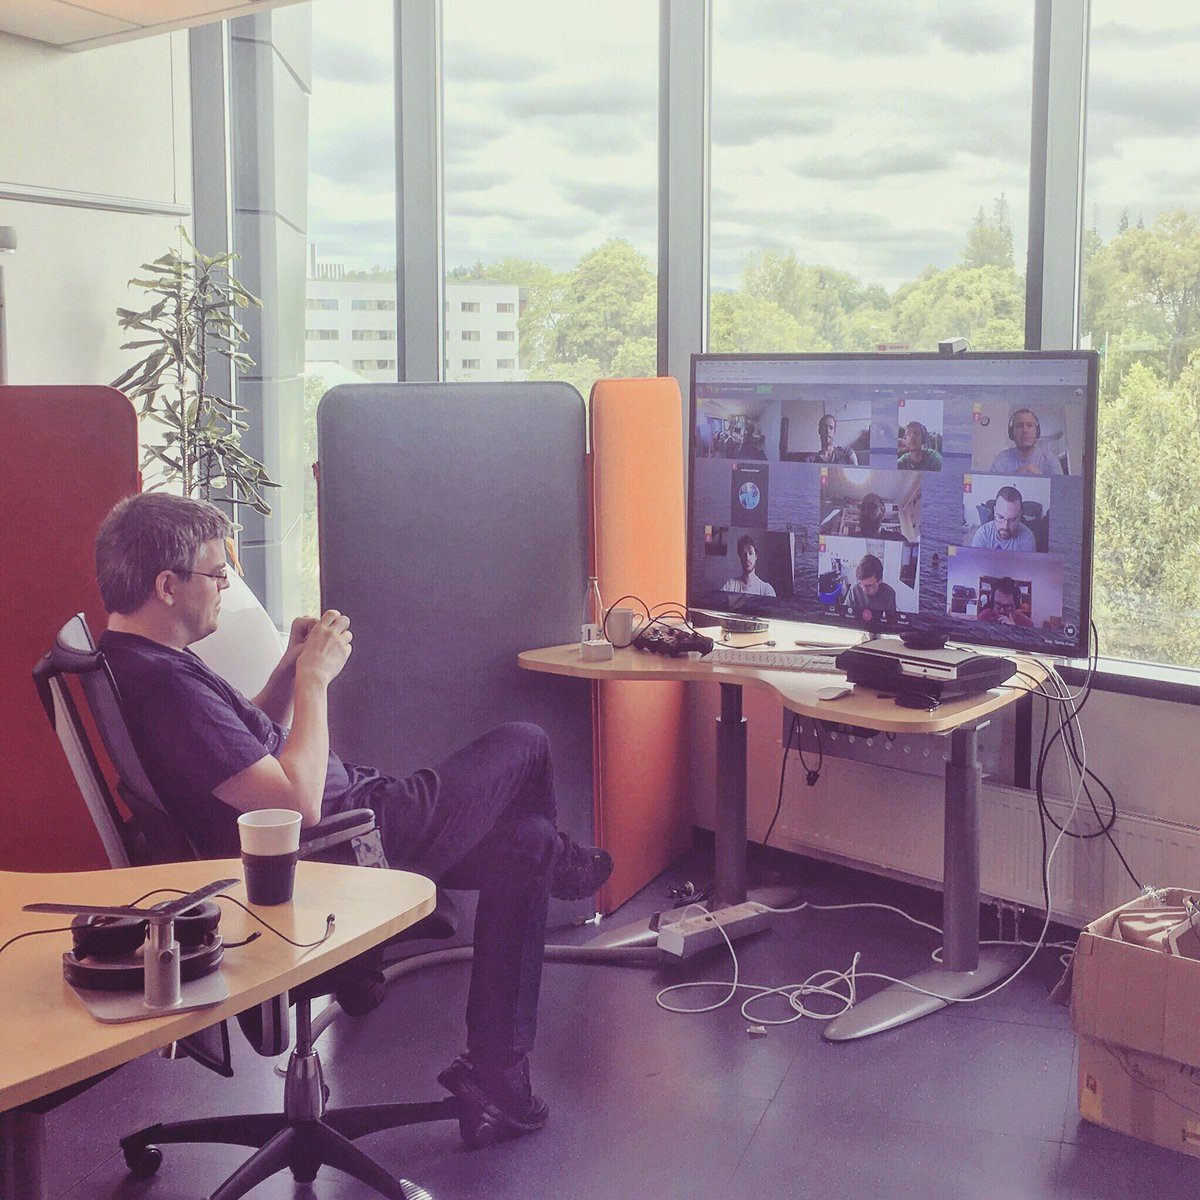 When you&#39;re the only one in the actual physical office  #remotework #standup  <br>http://pic.twitter.com/SDtY2WZqKp